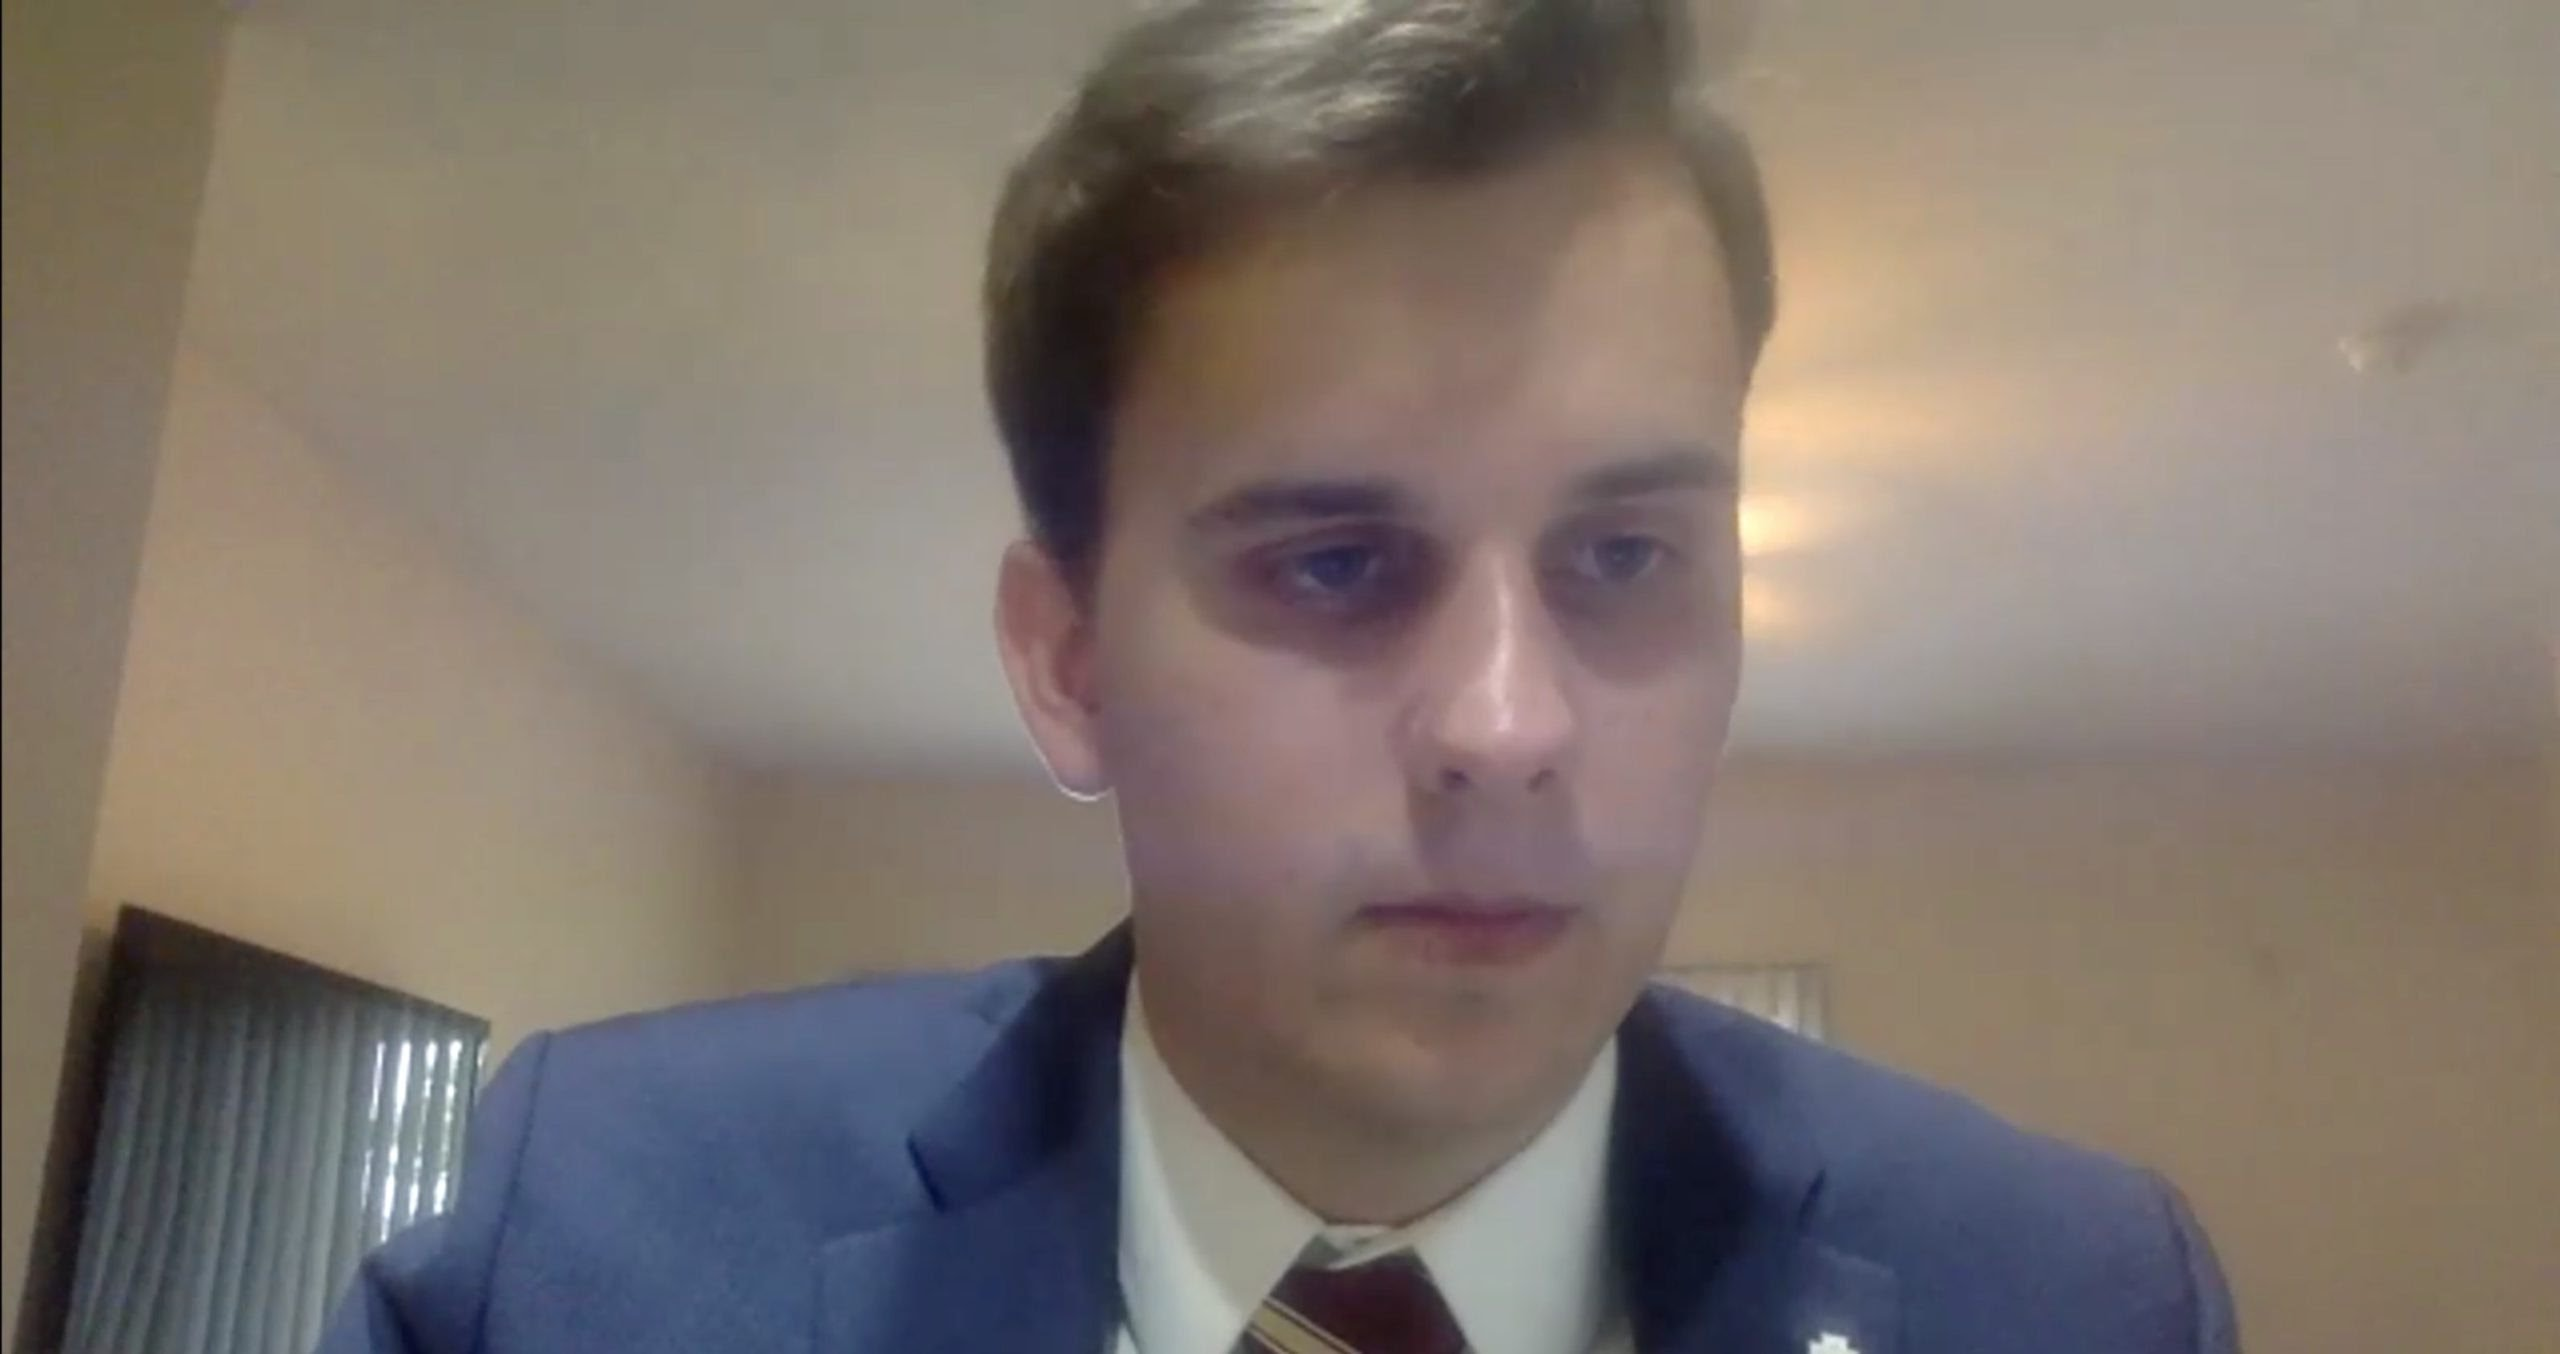 Jack Denton during a June 5 virtual FSU student Senate meeting in which senators voted on a no confidence motion. (Florida State University/Zoom/Screenshot)